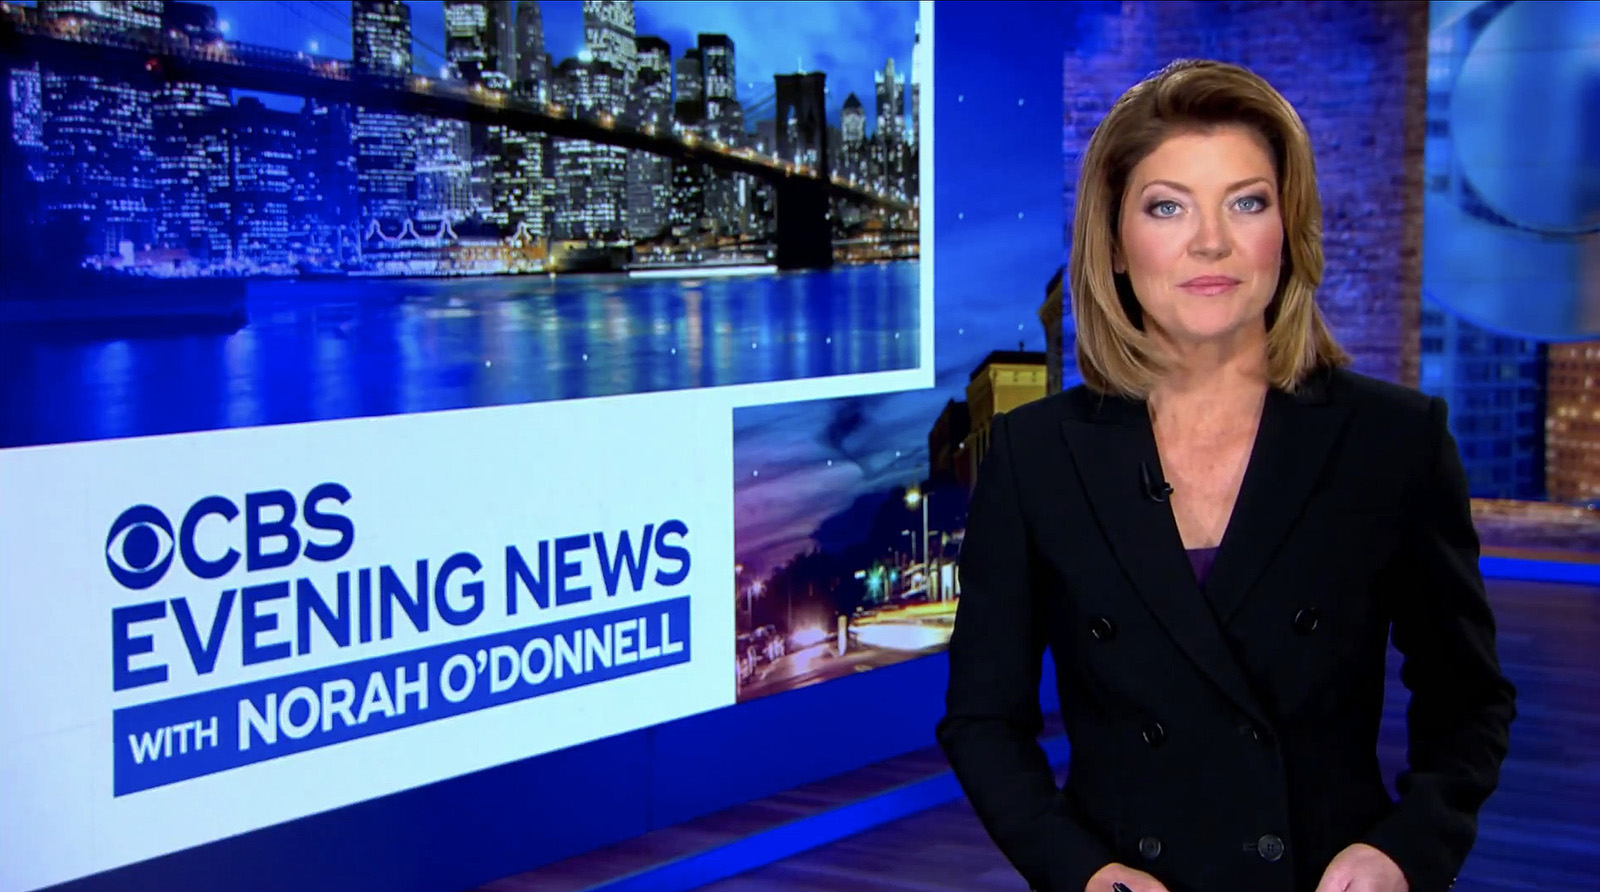 NCS_CBS-Evening-News_Norah-ODonnell_002